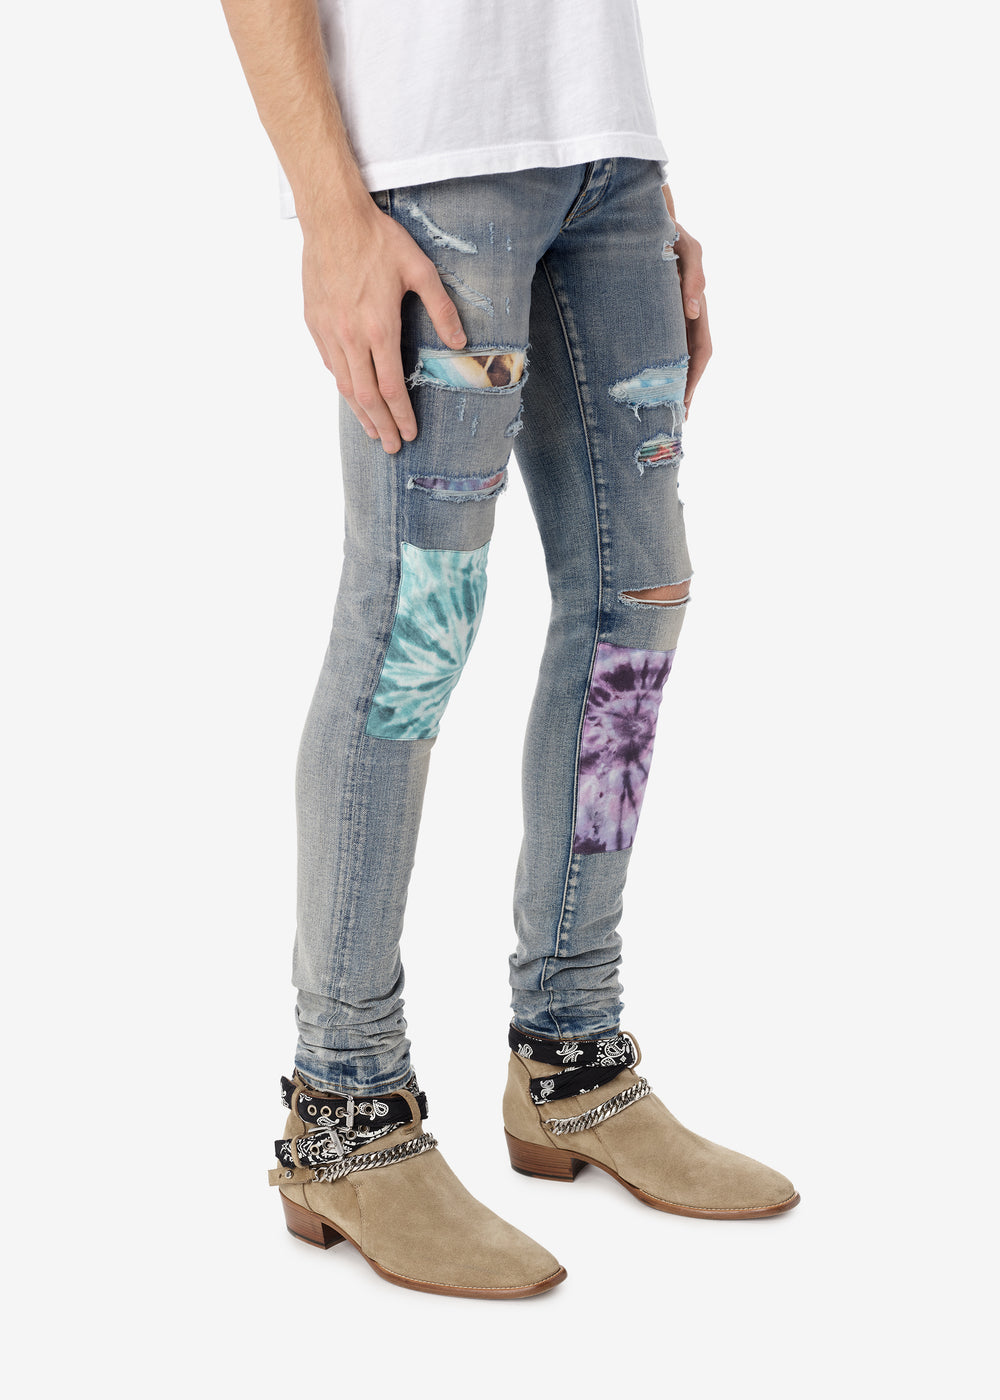 TIE DYE ART PATCH JEAN - ORIGINAL INDIGO